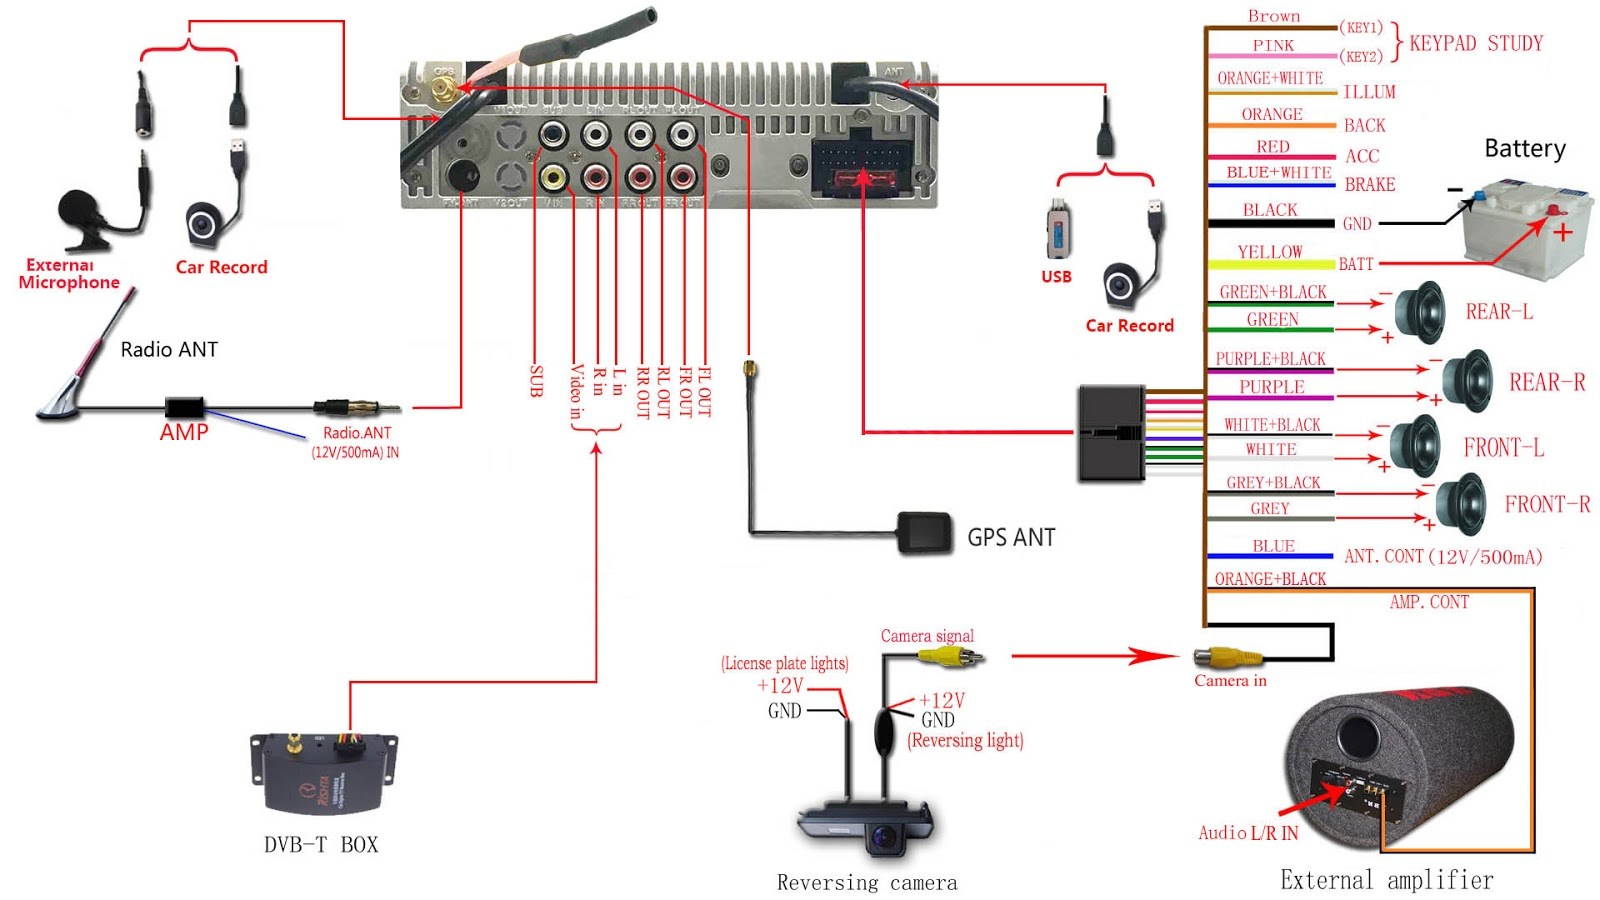 car sub and amp wiring diagram rj11 wall socket australia joying single din stereo installed on jeep dodge this is the of as reference